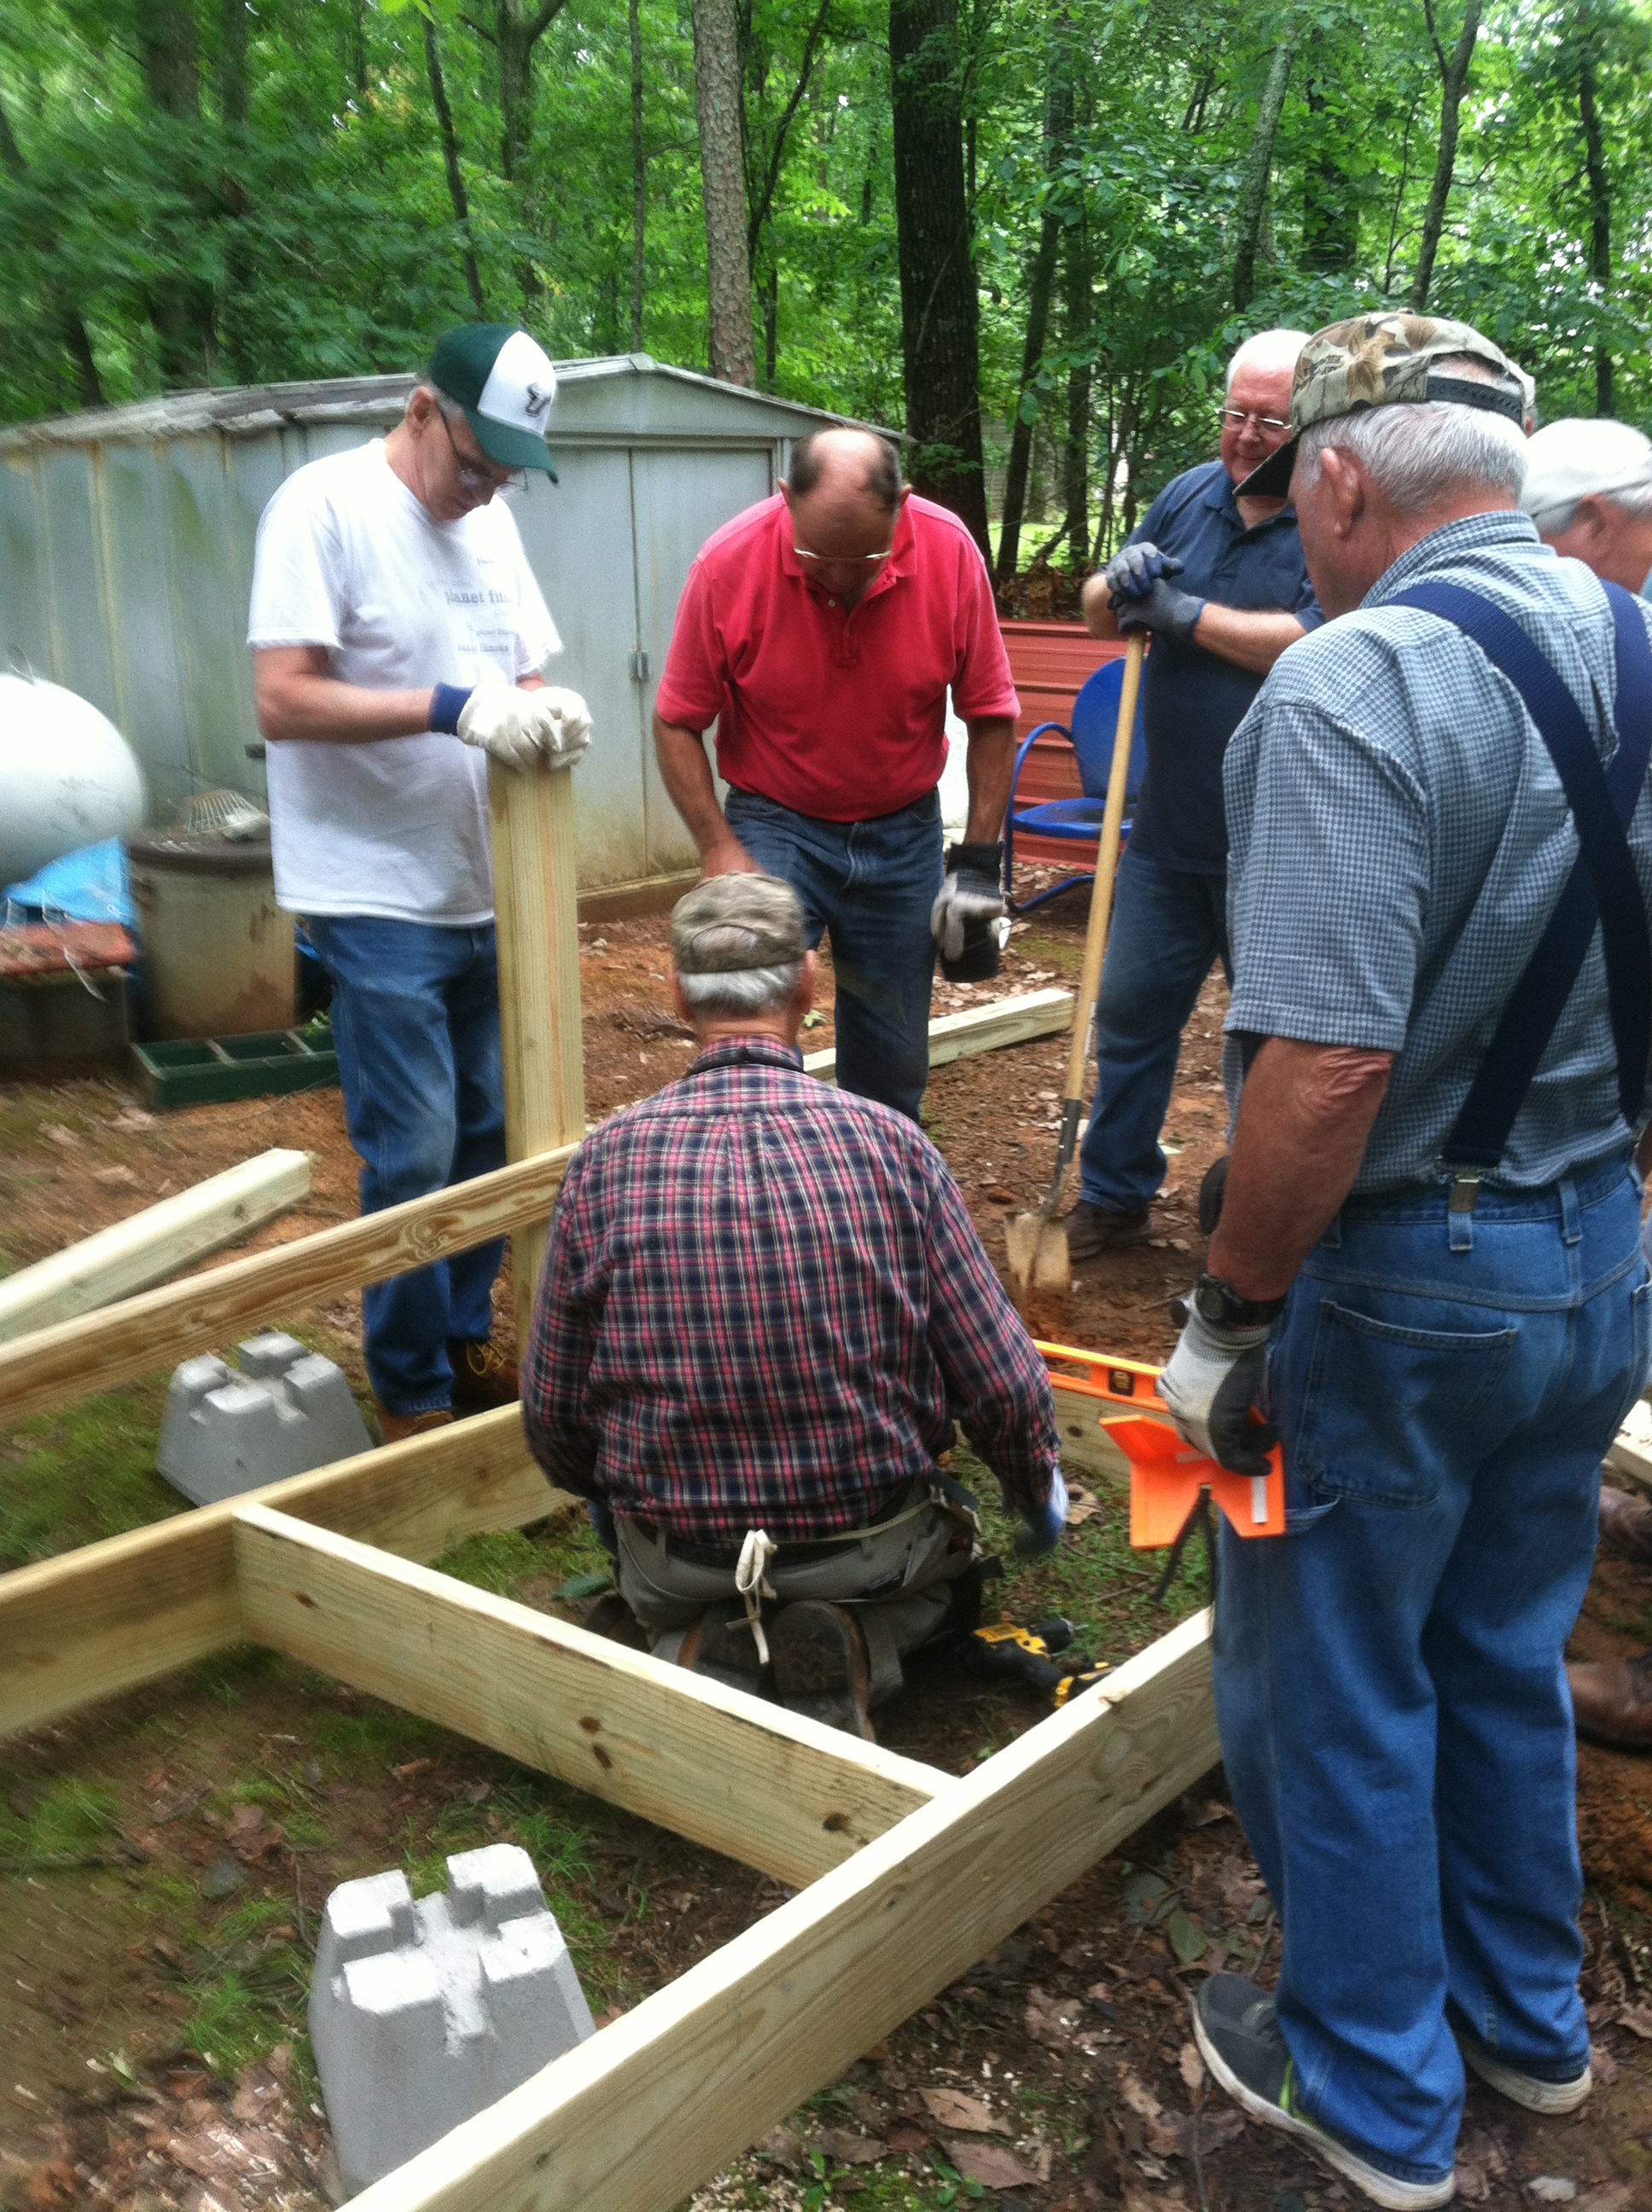 Building ramps in the community